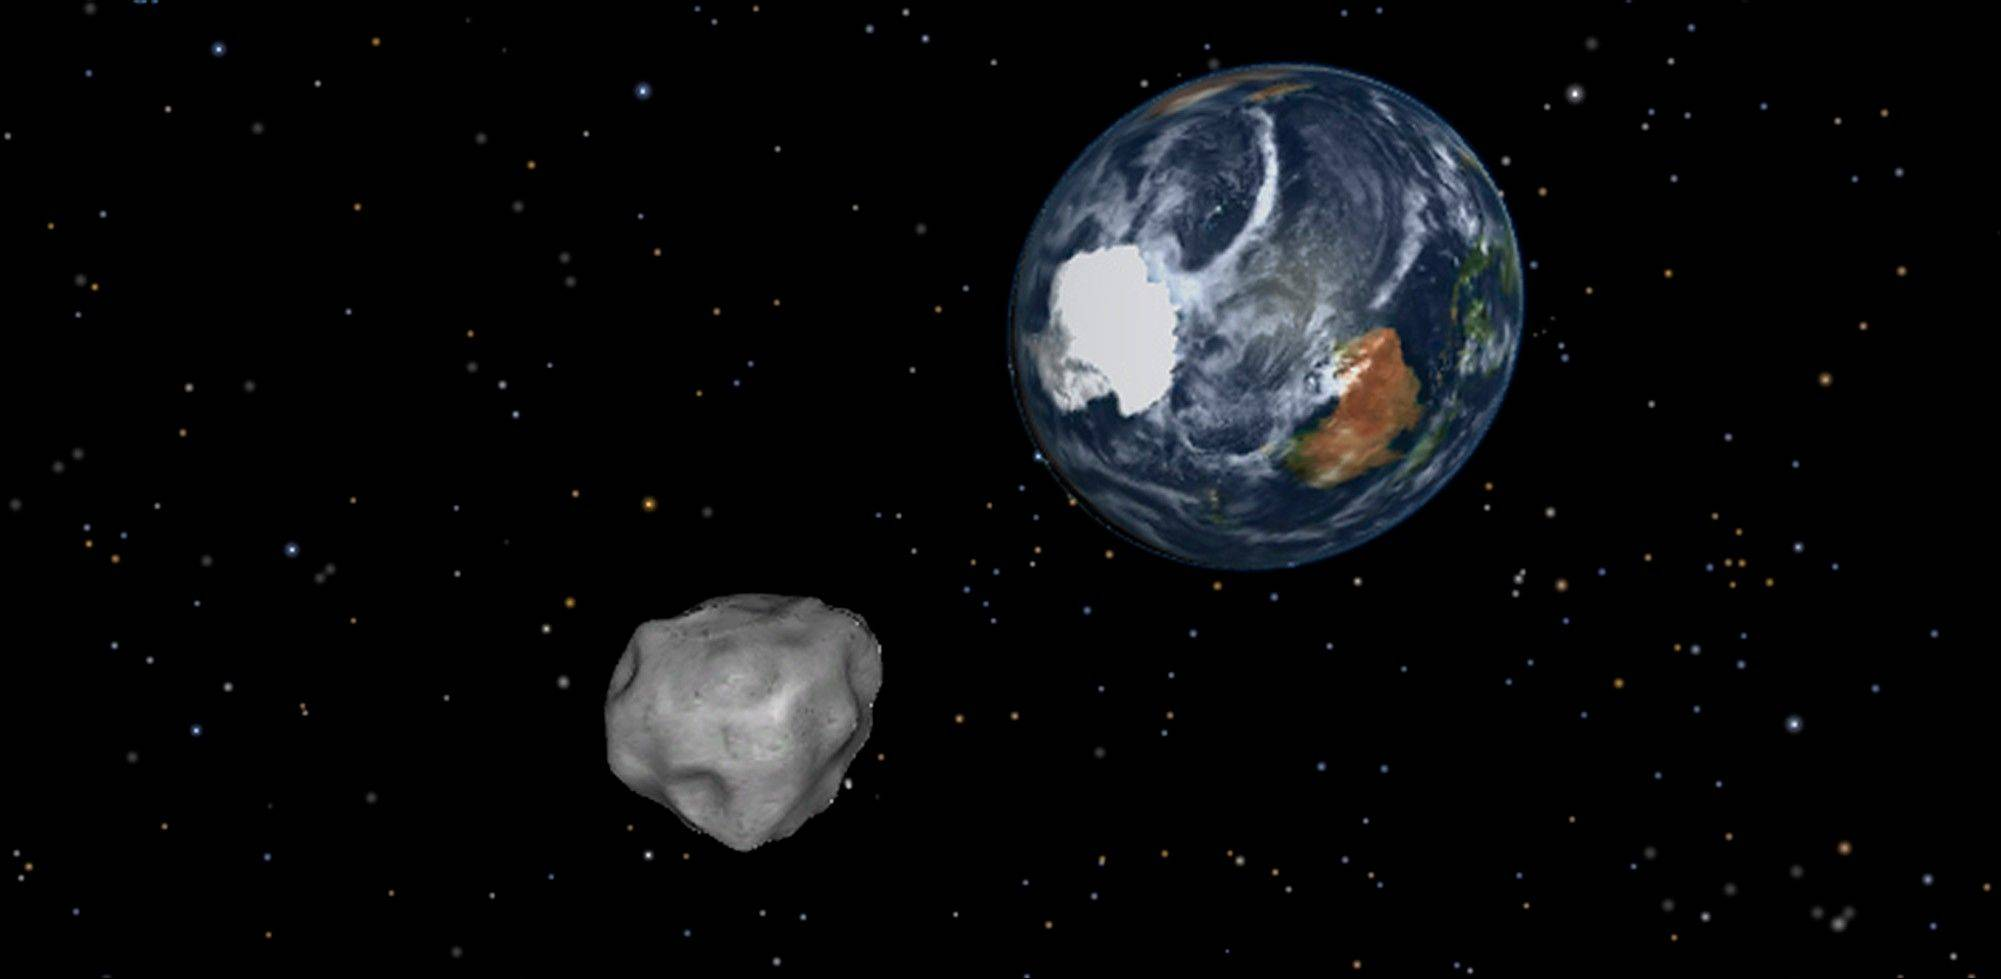 This image provided by NASA/JPL-Caltech shows a simulation of asteroid 2012 DA14 approaching from the south as it passes through the Earth-moon system Friday, Feb. 15, 2013. The 150-foot object will pass within 17,000 miles of the Earth. NASA scientists insist there is absolutely no chance of a collision as it passes.